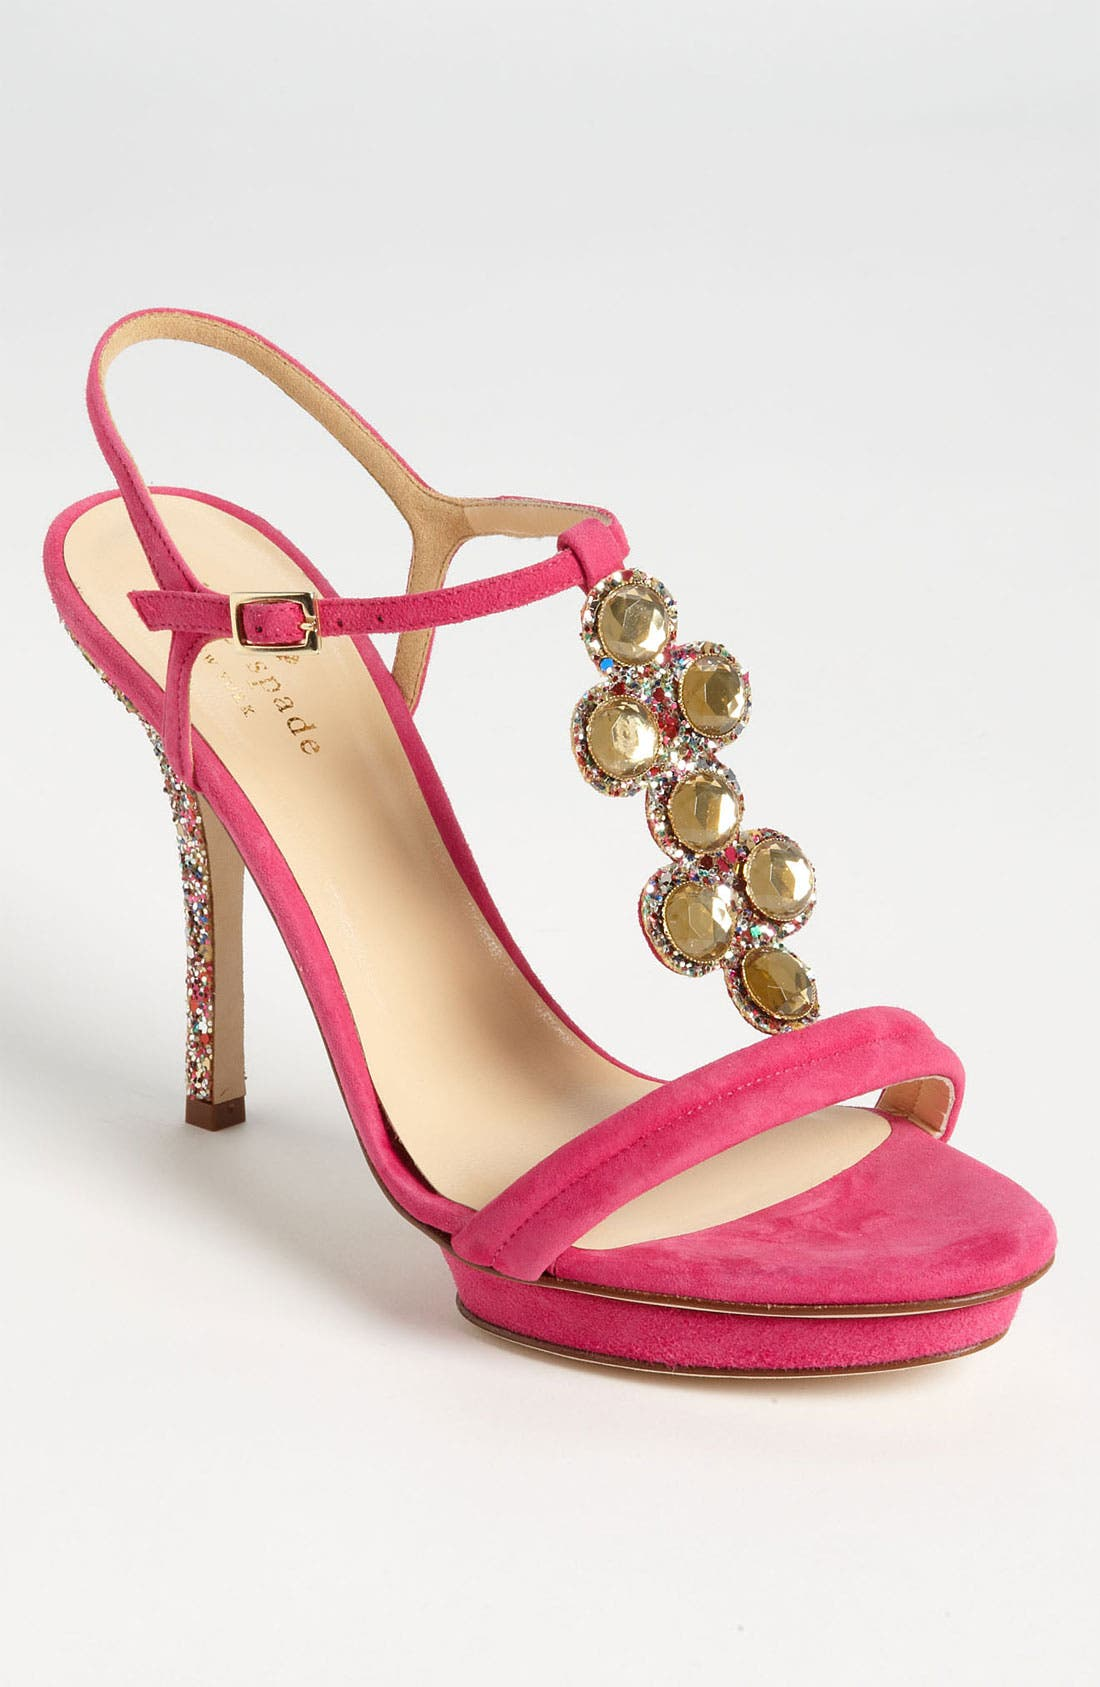 Main Image - kate spade new york 'velvet' sandal